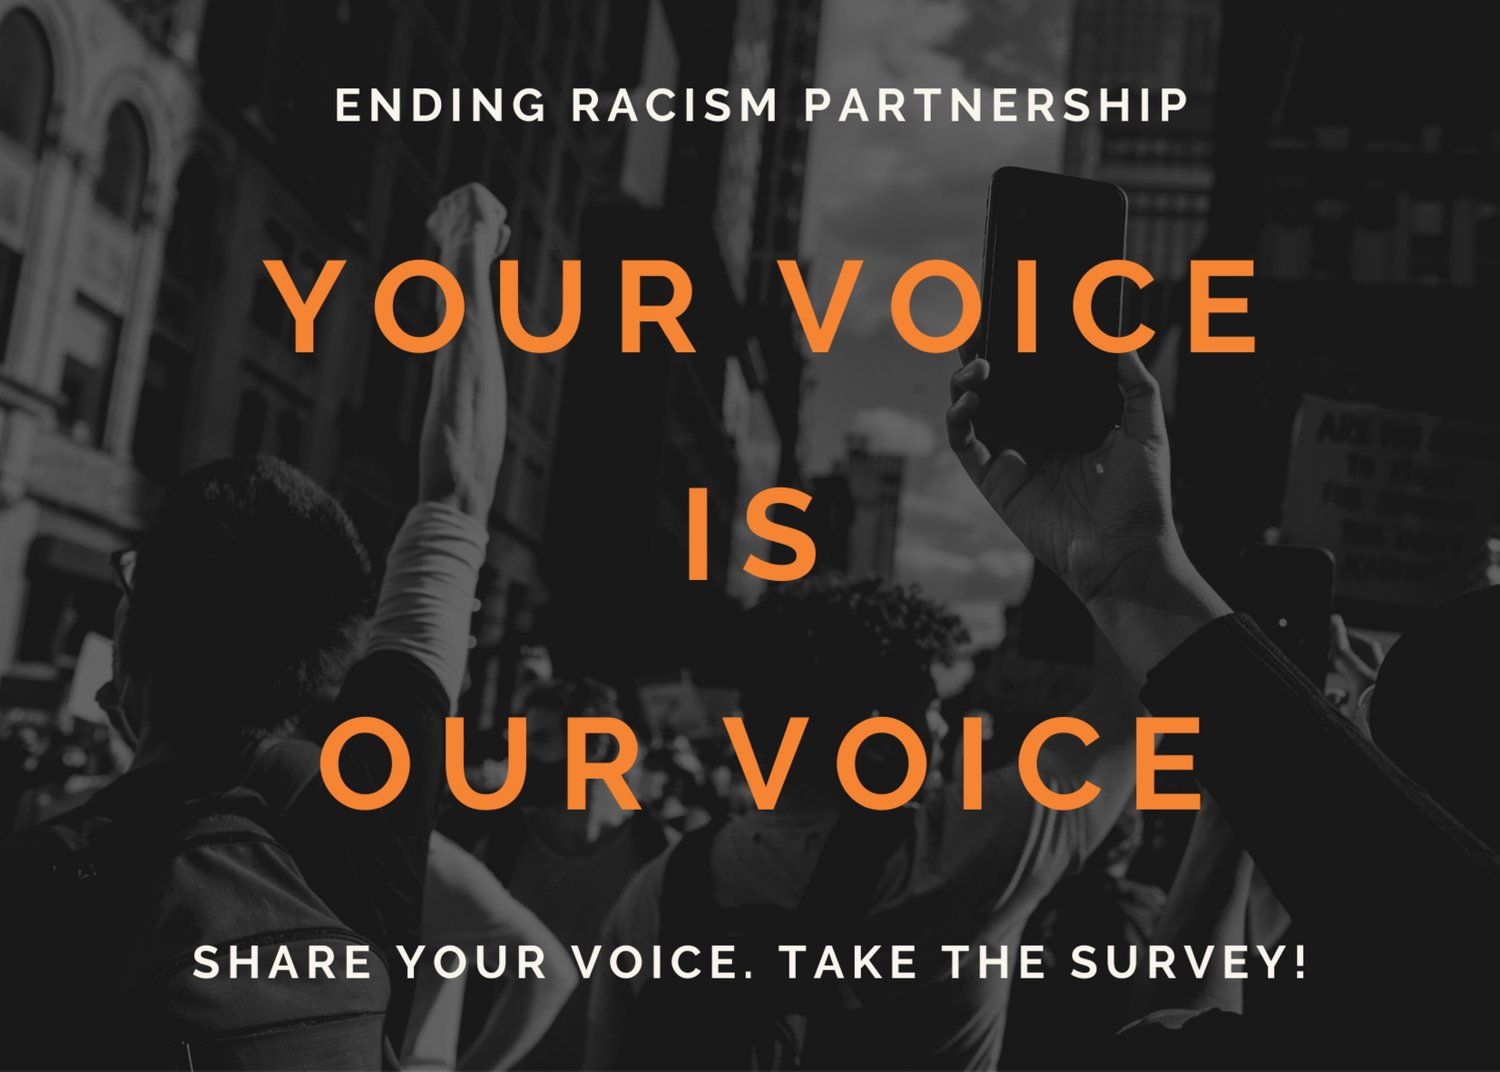 Currently available in English, Spanish and Chinese, the online survey is designed to collect firsthand accounts of perceptions of racism and its impact. It takes less than five minutes to complete and will be open through the end of April. The Partnership will share the results of the survey in May.